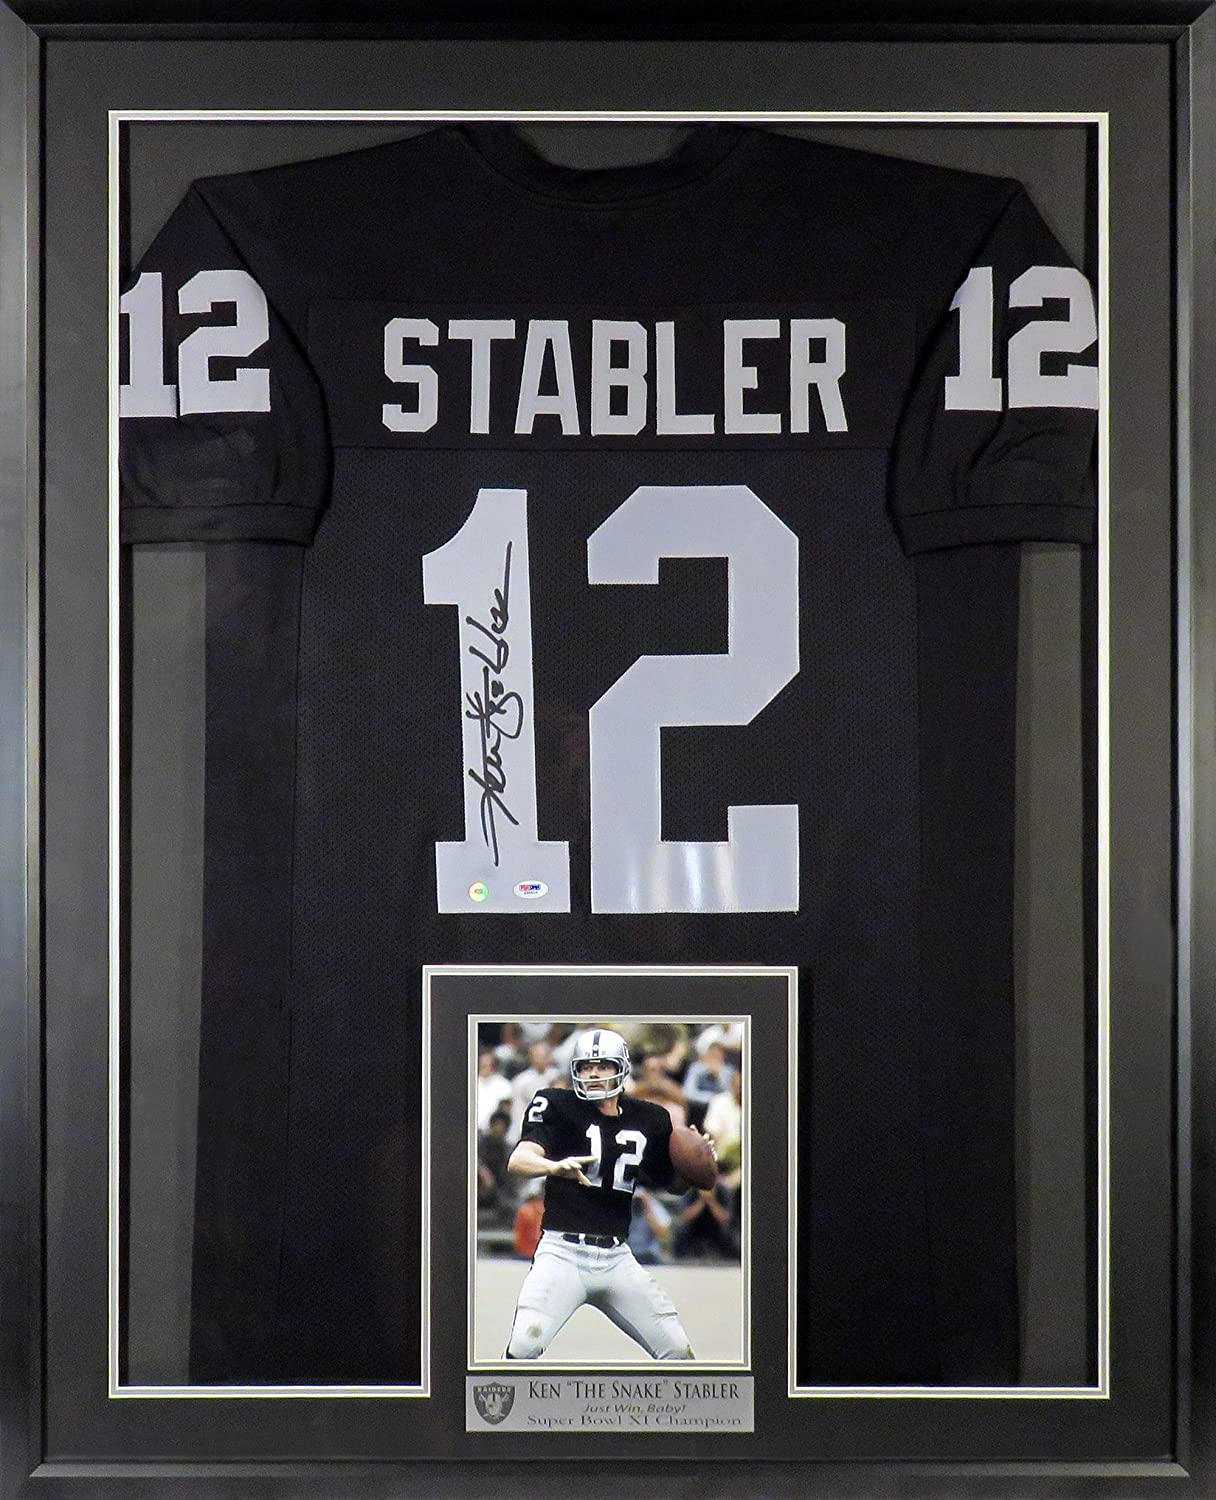 low priced d232a 8c407 12 kenny stabler jersey plan